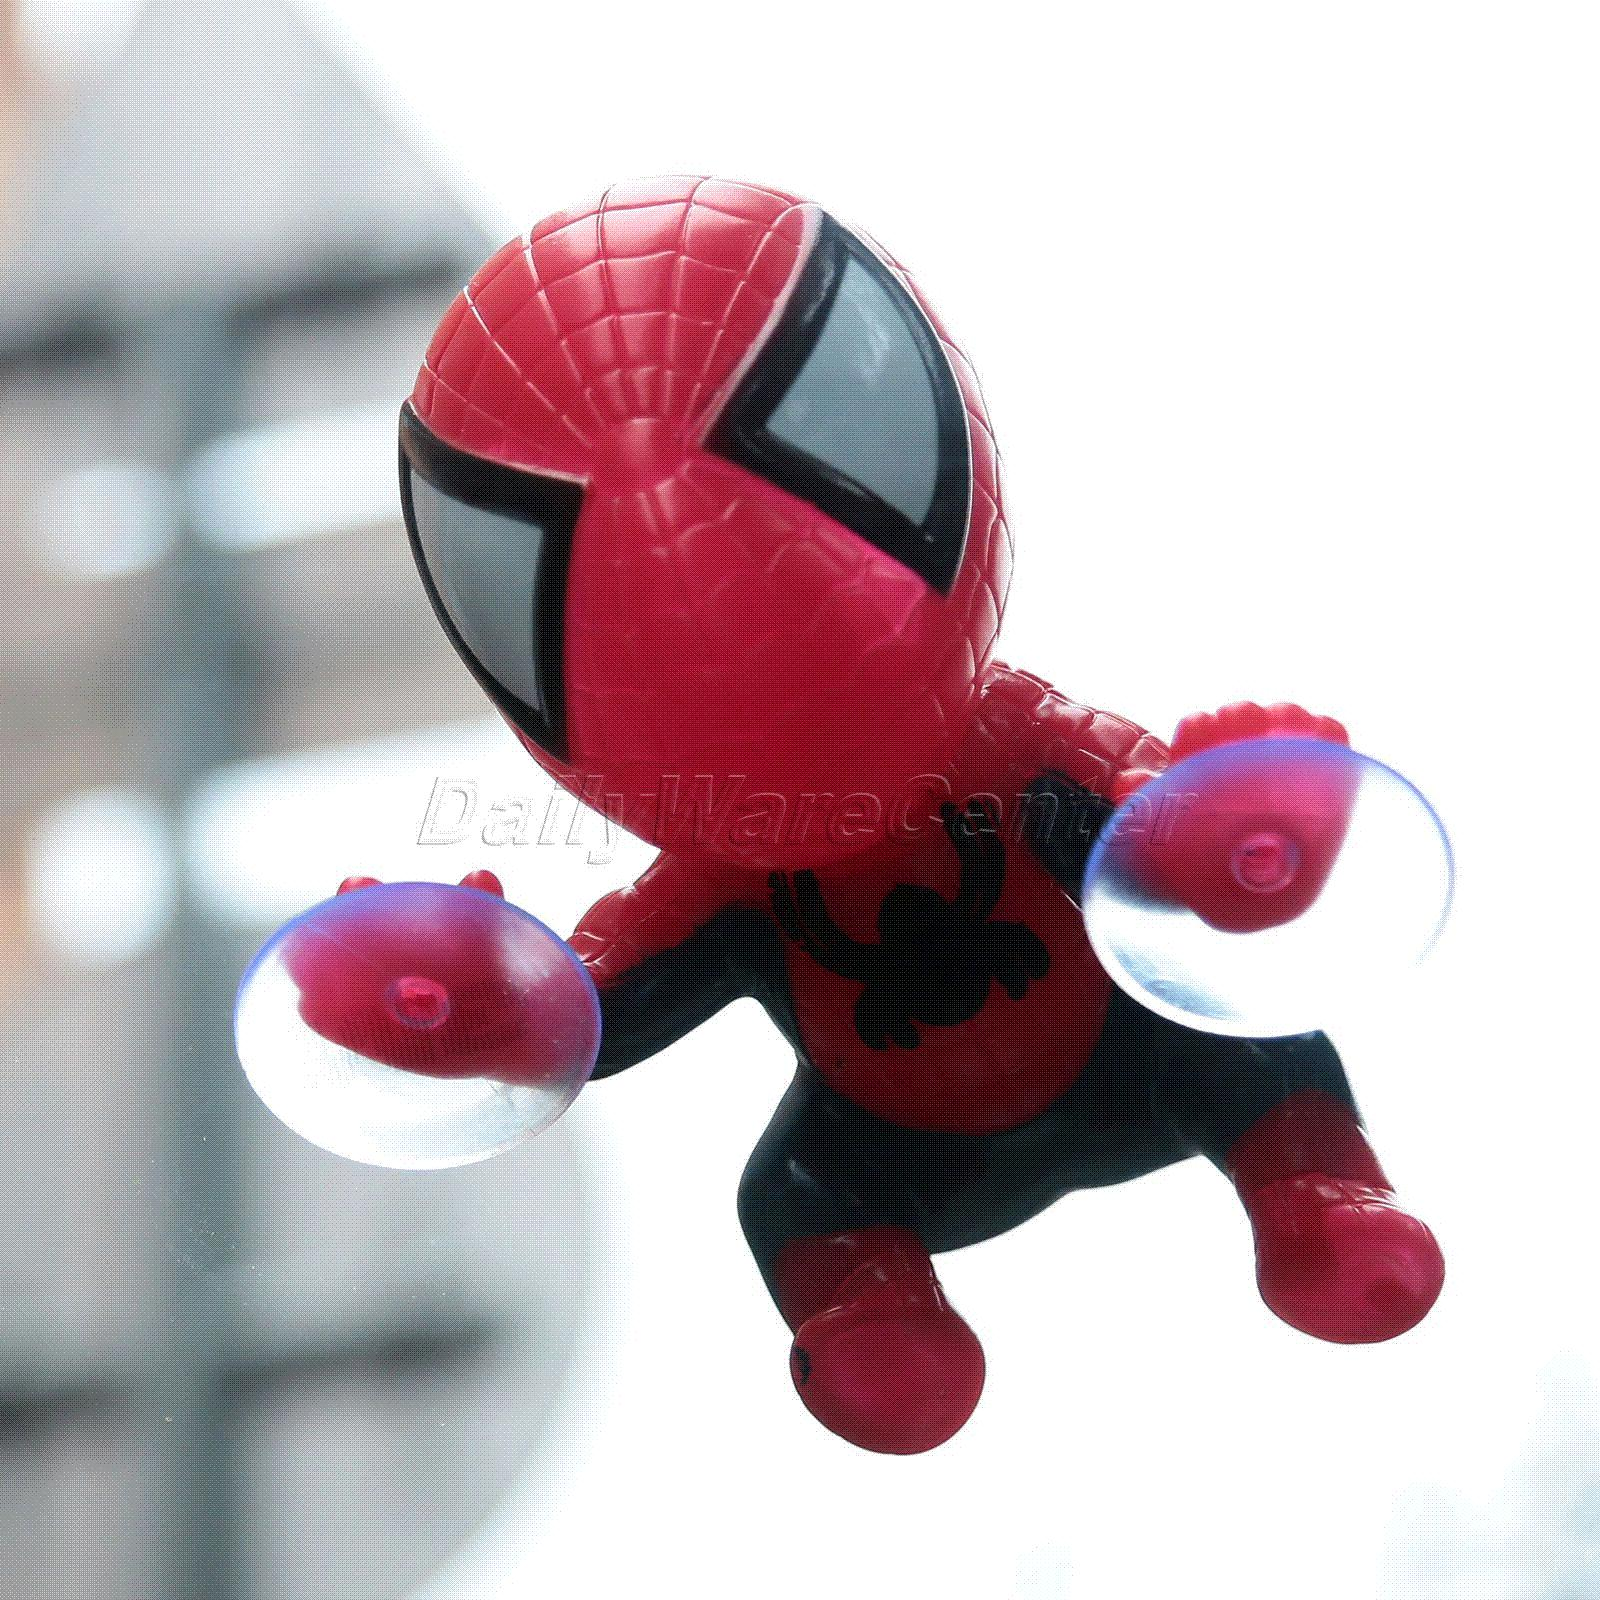 2018 Car Styling Cute Sticker Climbing Spider Man Suction Cup Doll Toy 360 Degree Rotating Decoration Accessories Black Red From Mymother009